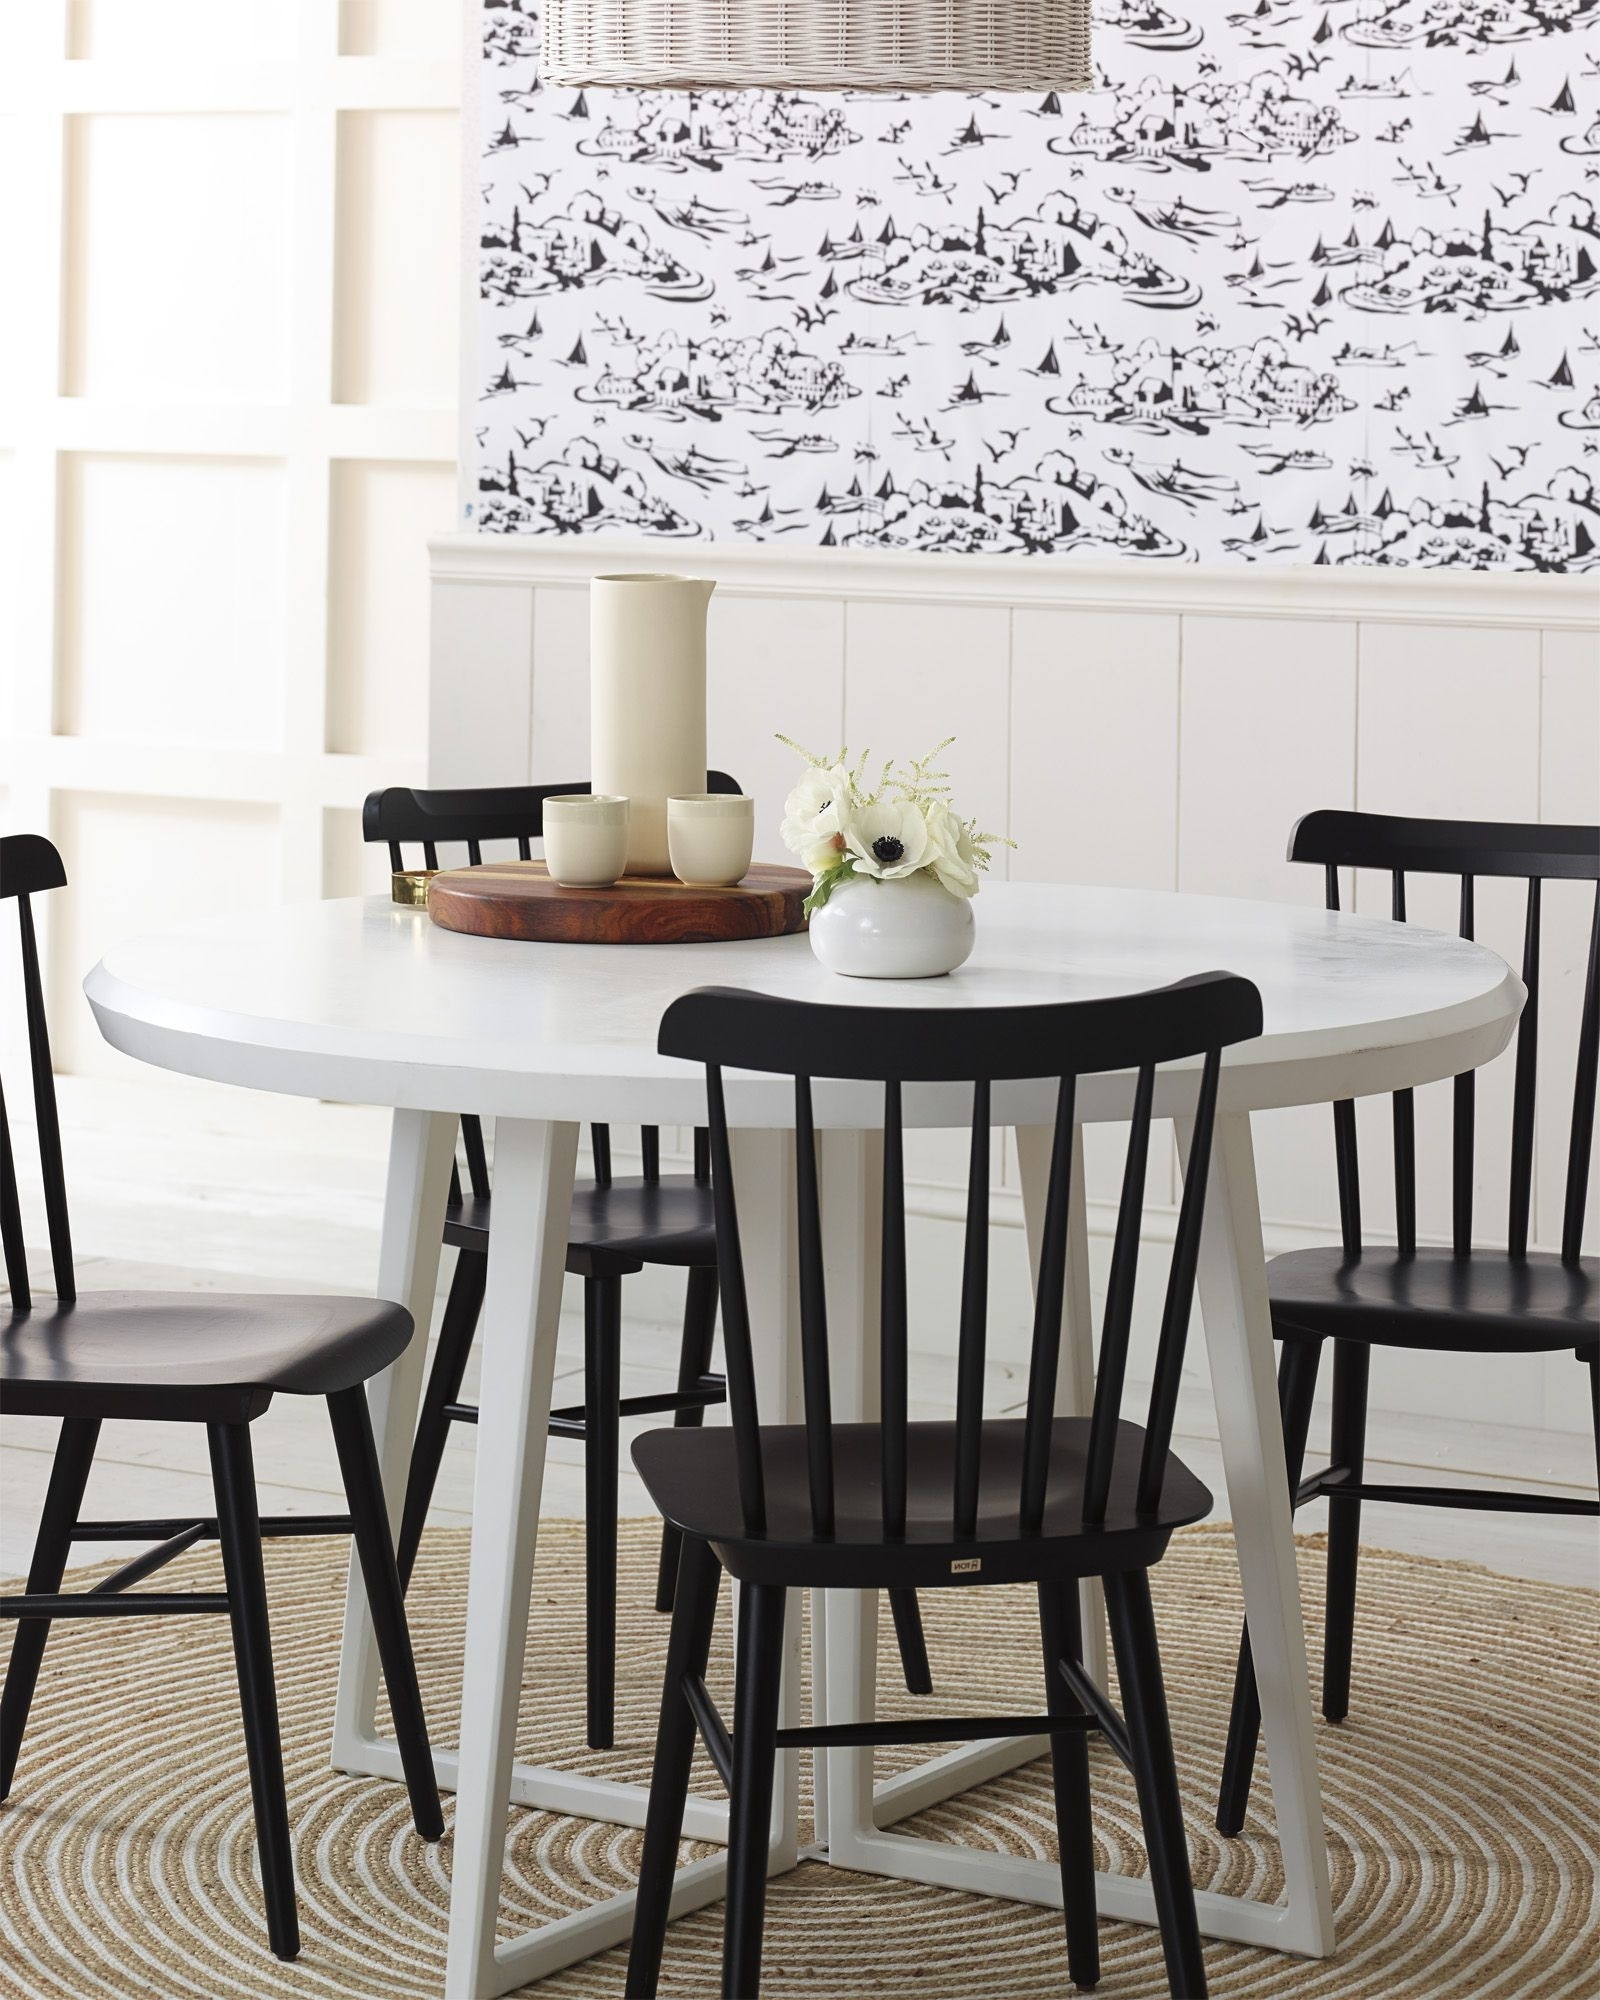 Irondale Diaw Counterstool In Havana in Newest Grady 5 Piece Round Dining Sets